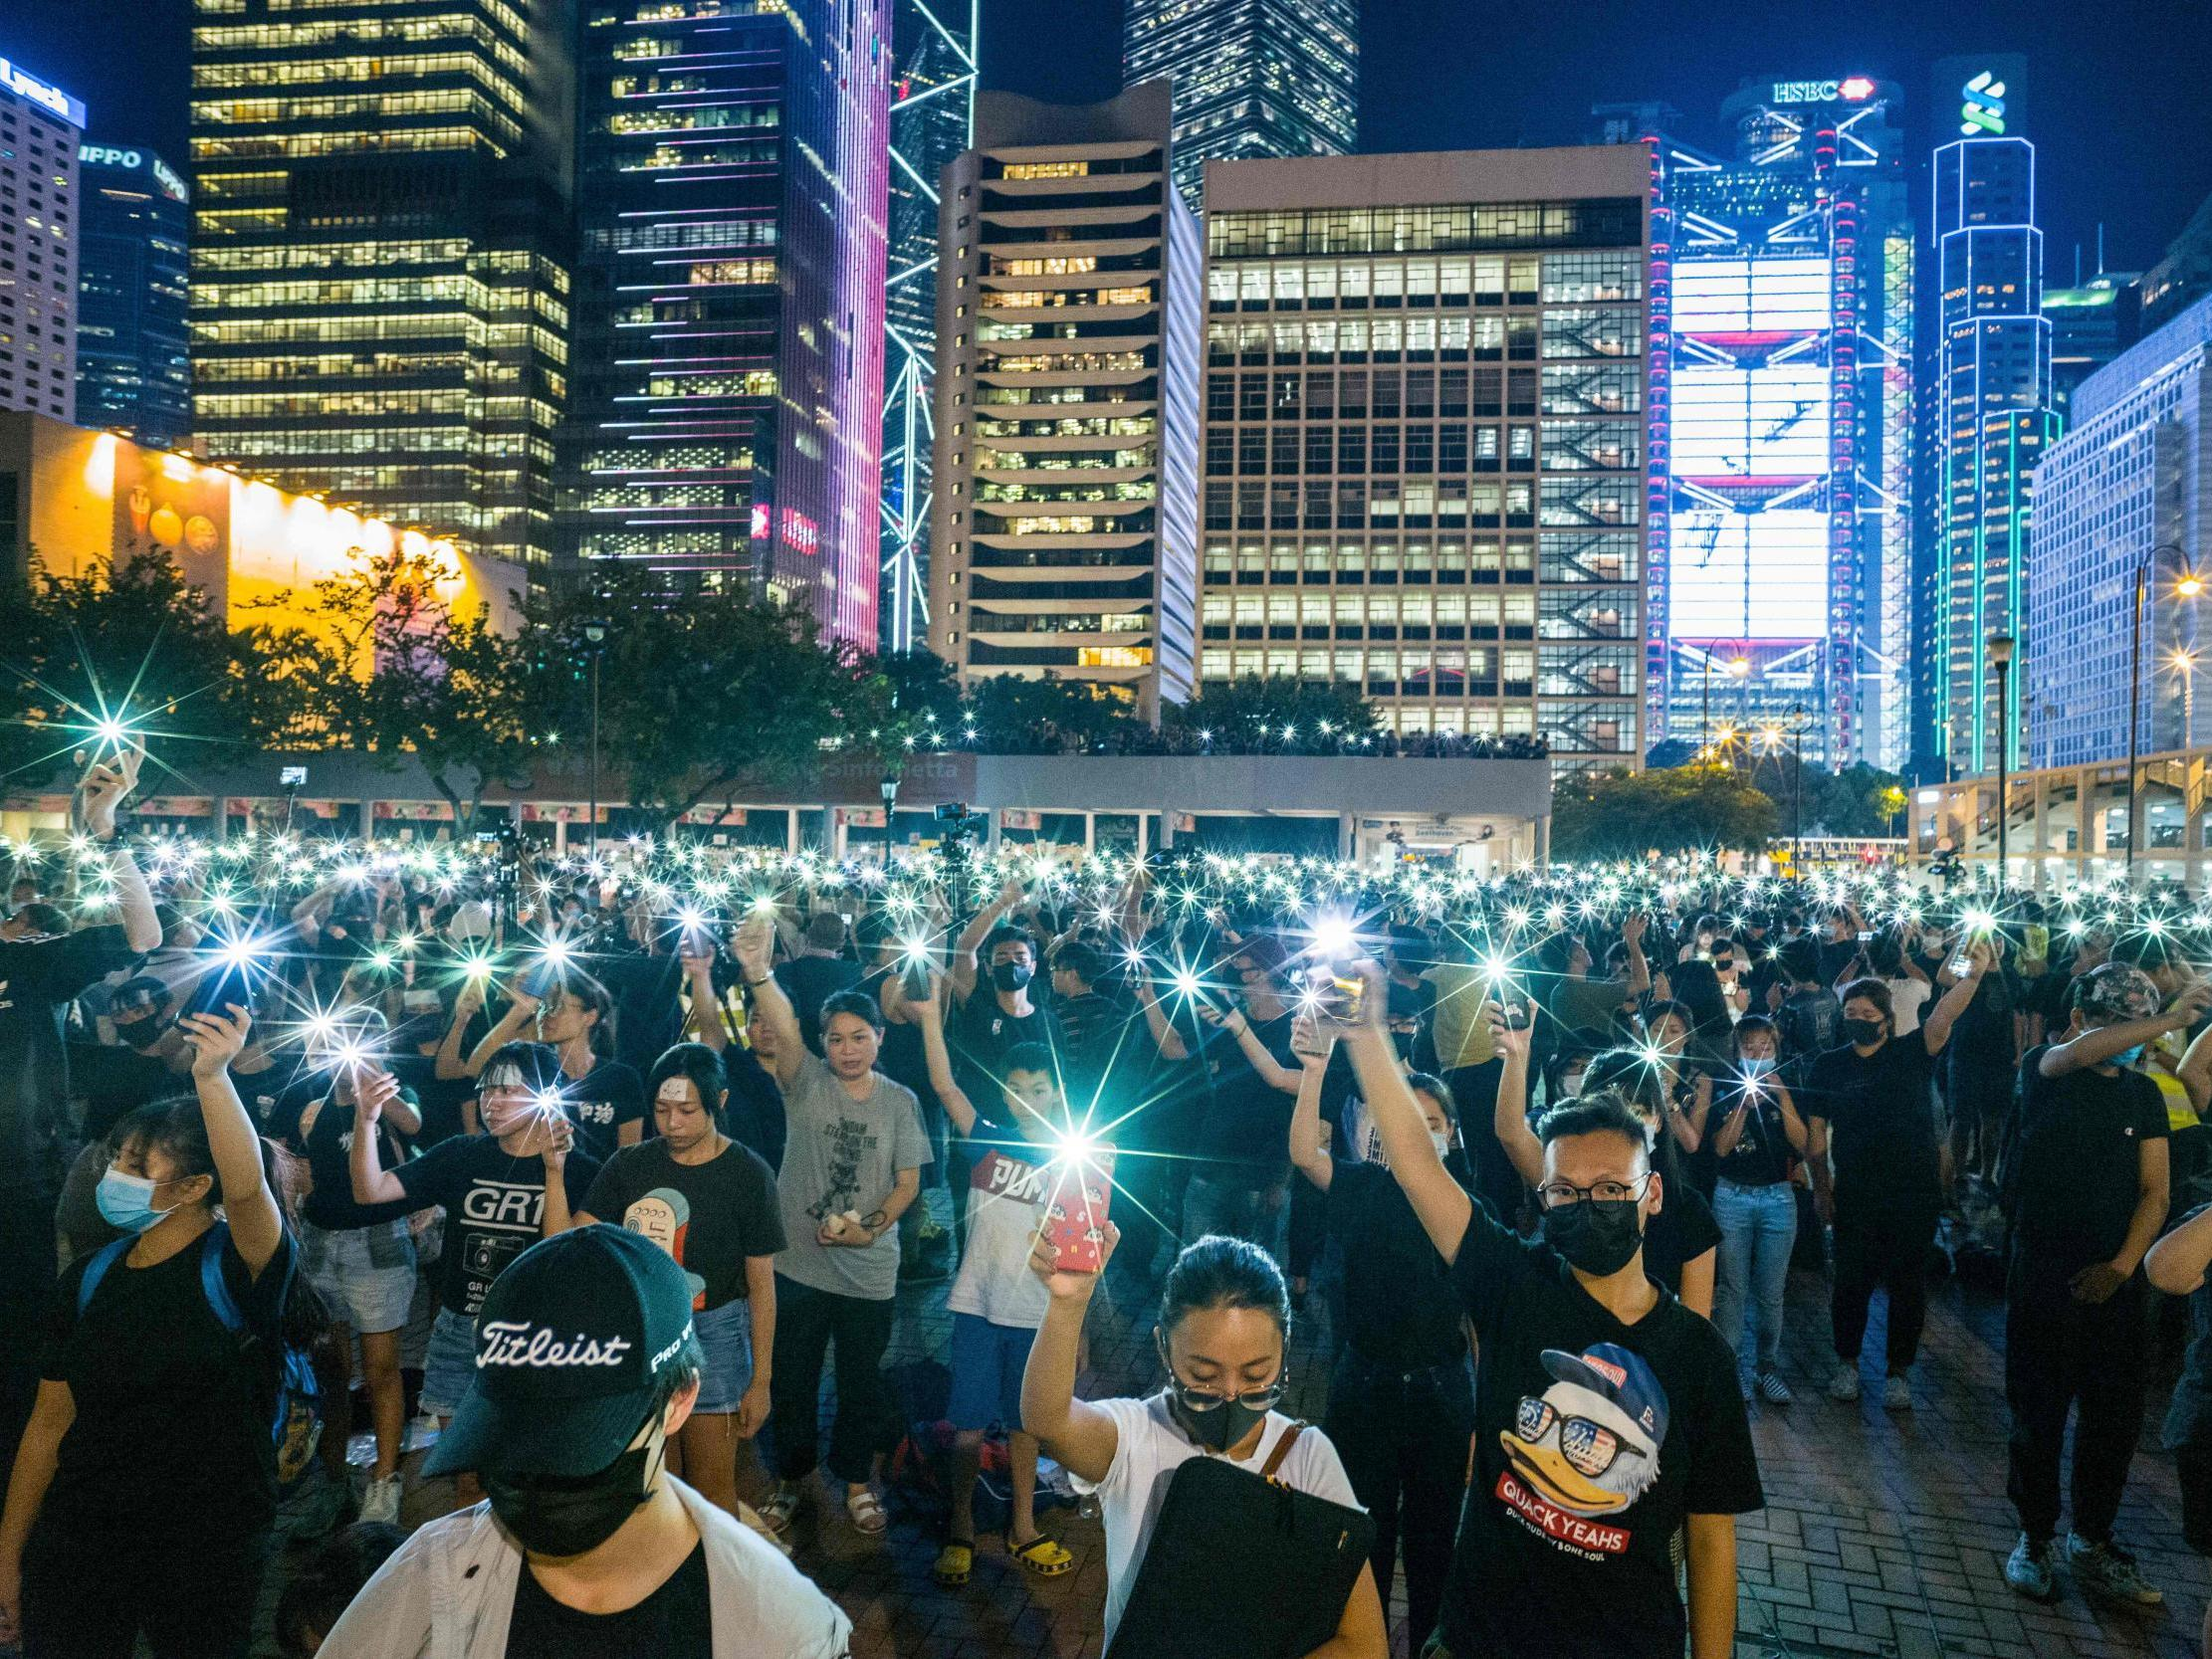 The Song From Les Miserables That Has Become A Protest Anthem In Hong Kong The Independent The Independent